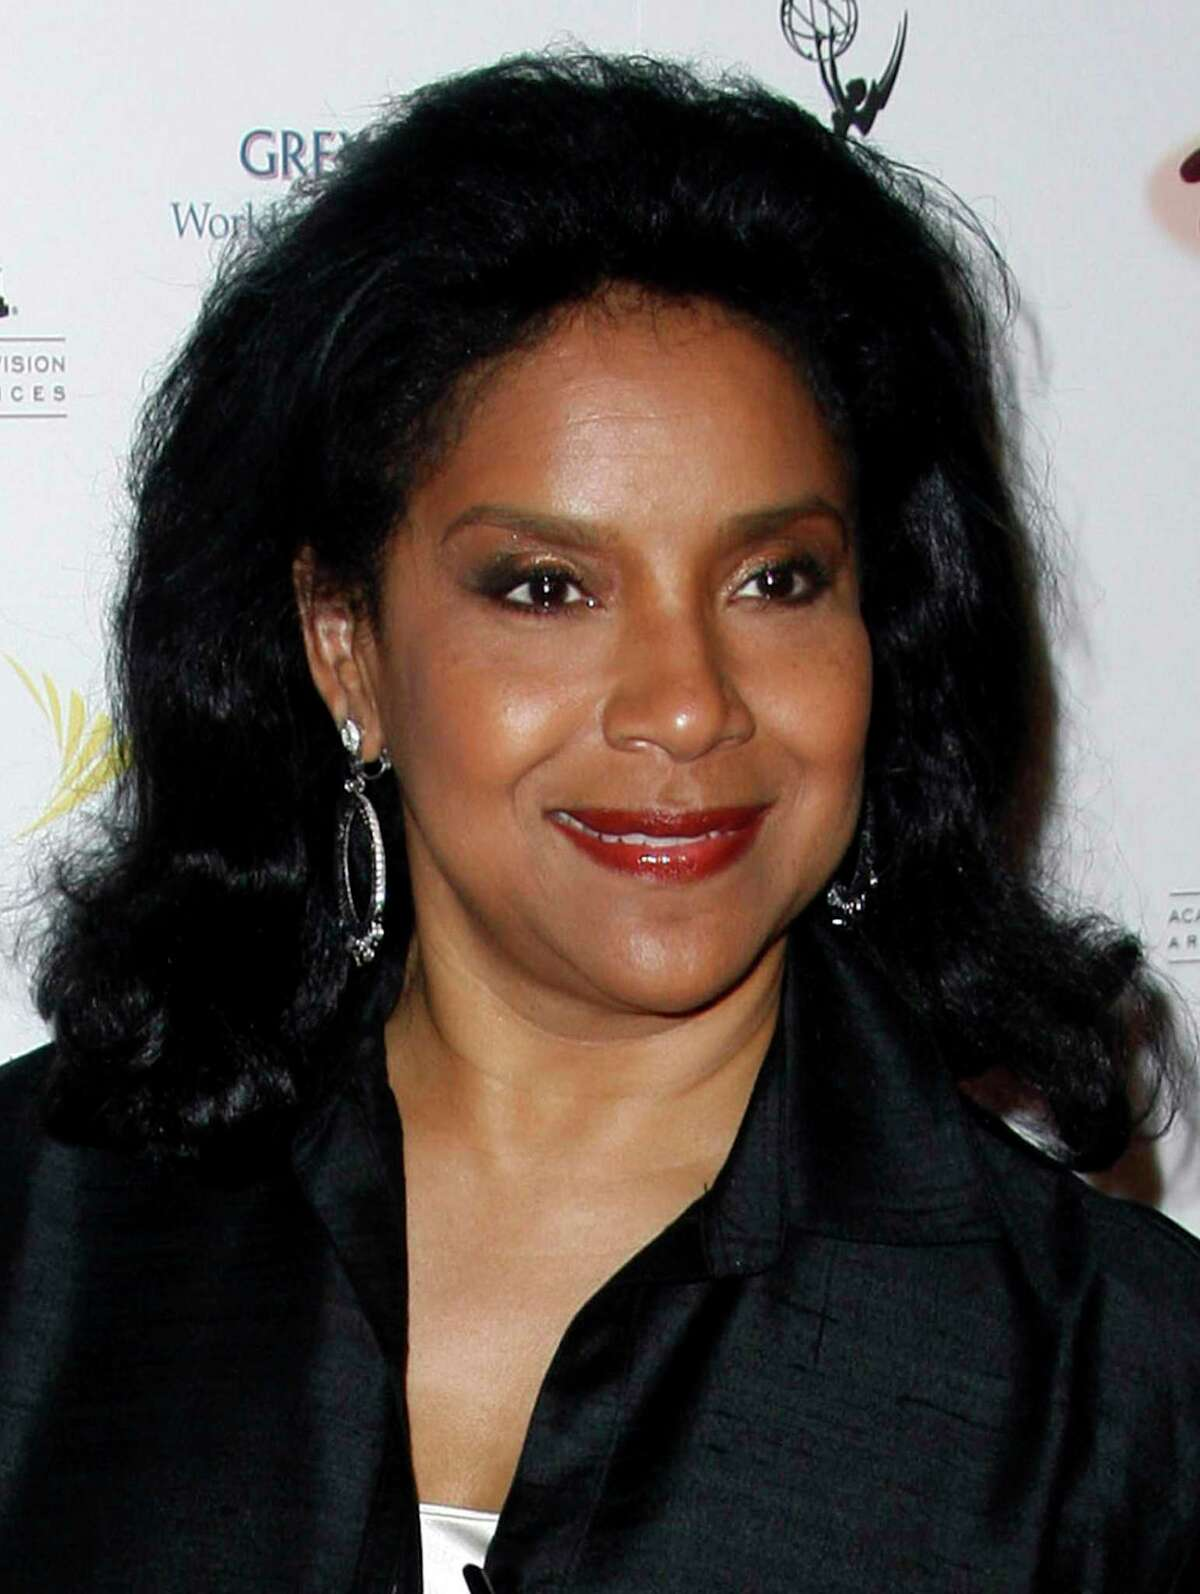 ** FILE ** In this Sept. 19, 2008 file photo, Phylicia Rashad arrives at the 2008 Primetime Emmy Awards Nominees for Outstanding Performance reception in Los Angeles. (AP Photo/Matt Sayles, file)